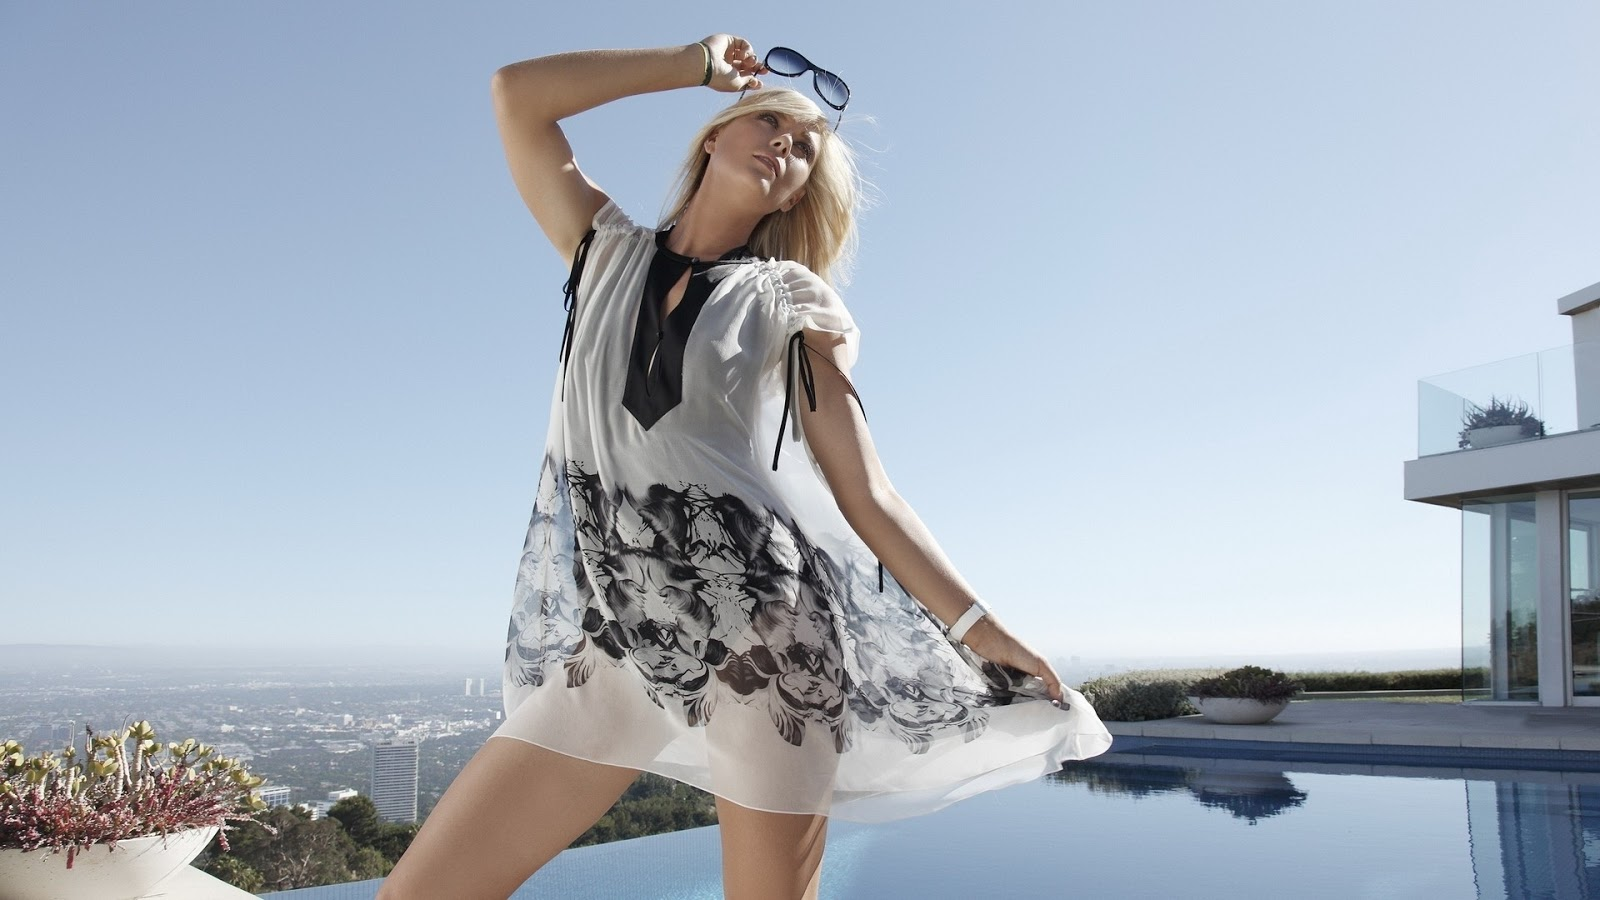 Maria Sharapova Hd Wallpapers Most Beautiful Places In